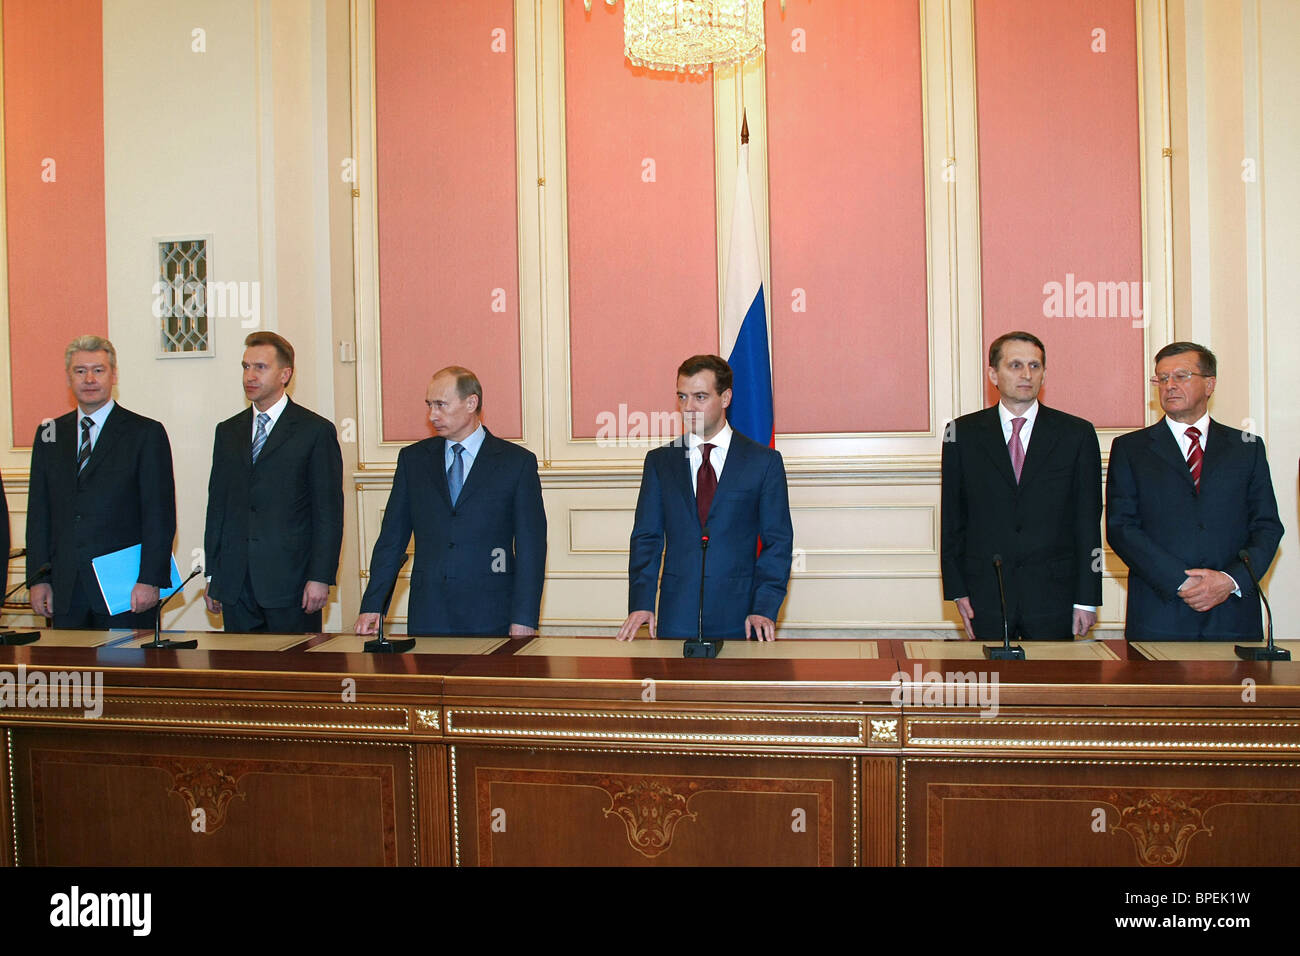 Putin announces cabinet line-up Stock Photo, Royalty Free Image ...